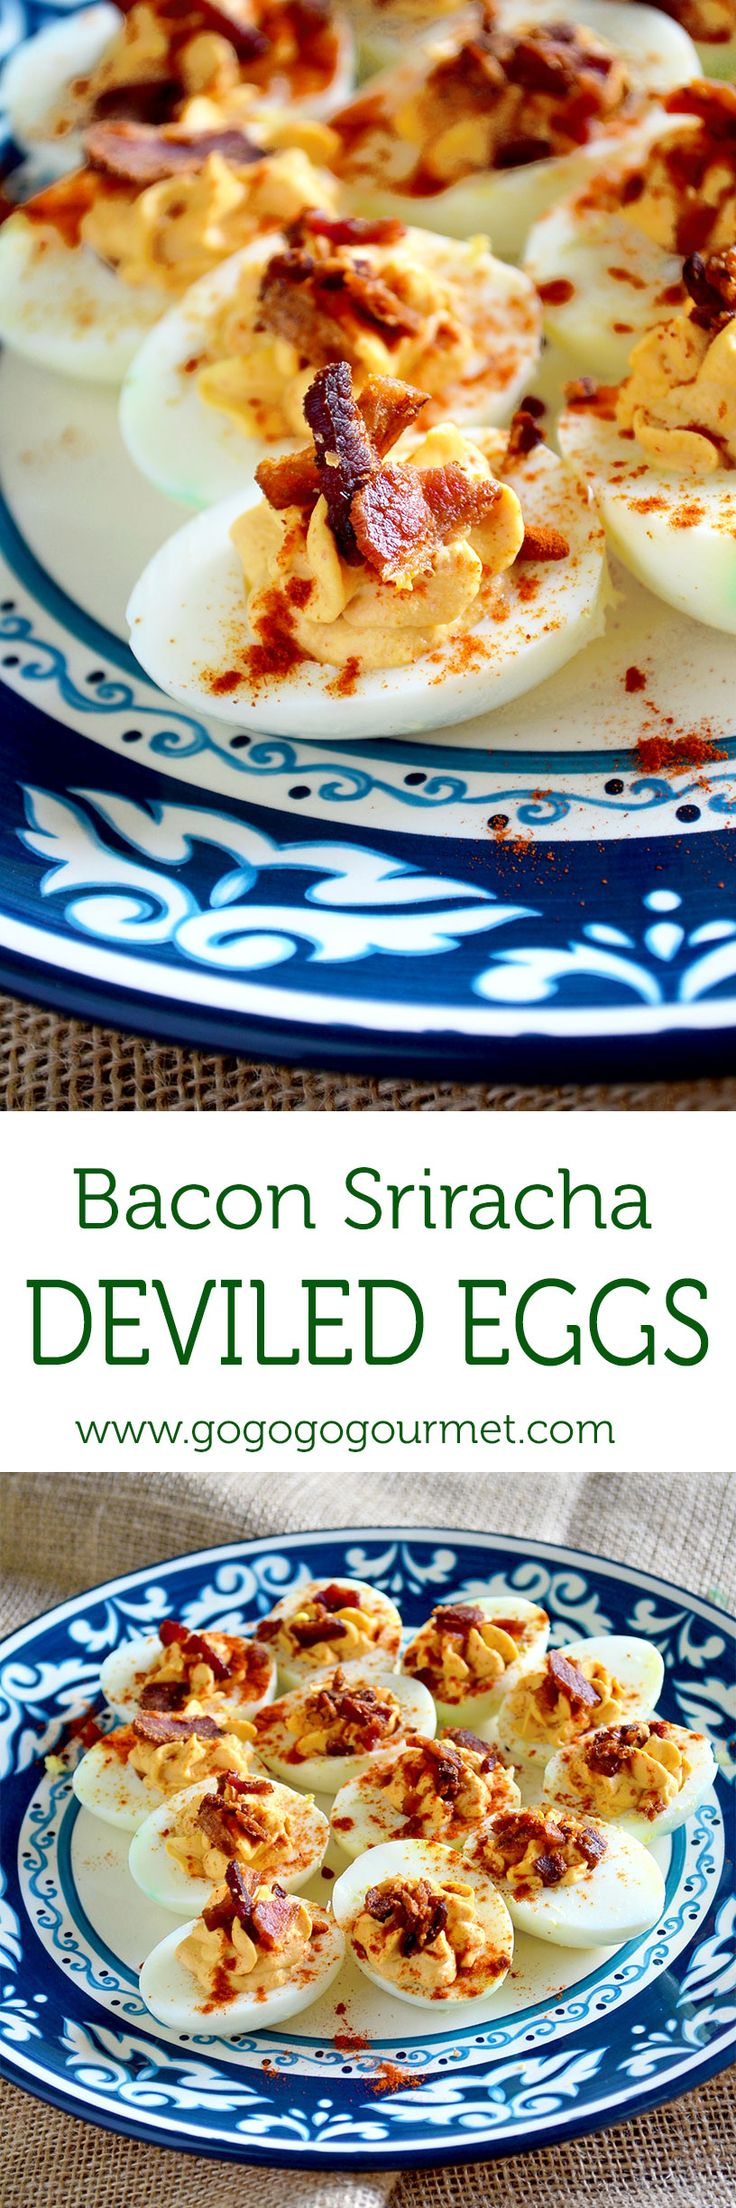 Bacon Sriracha Deviled Eggs